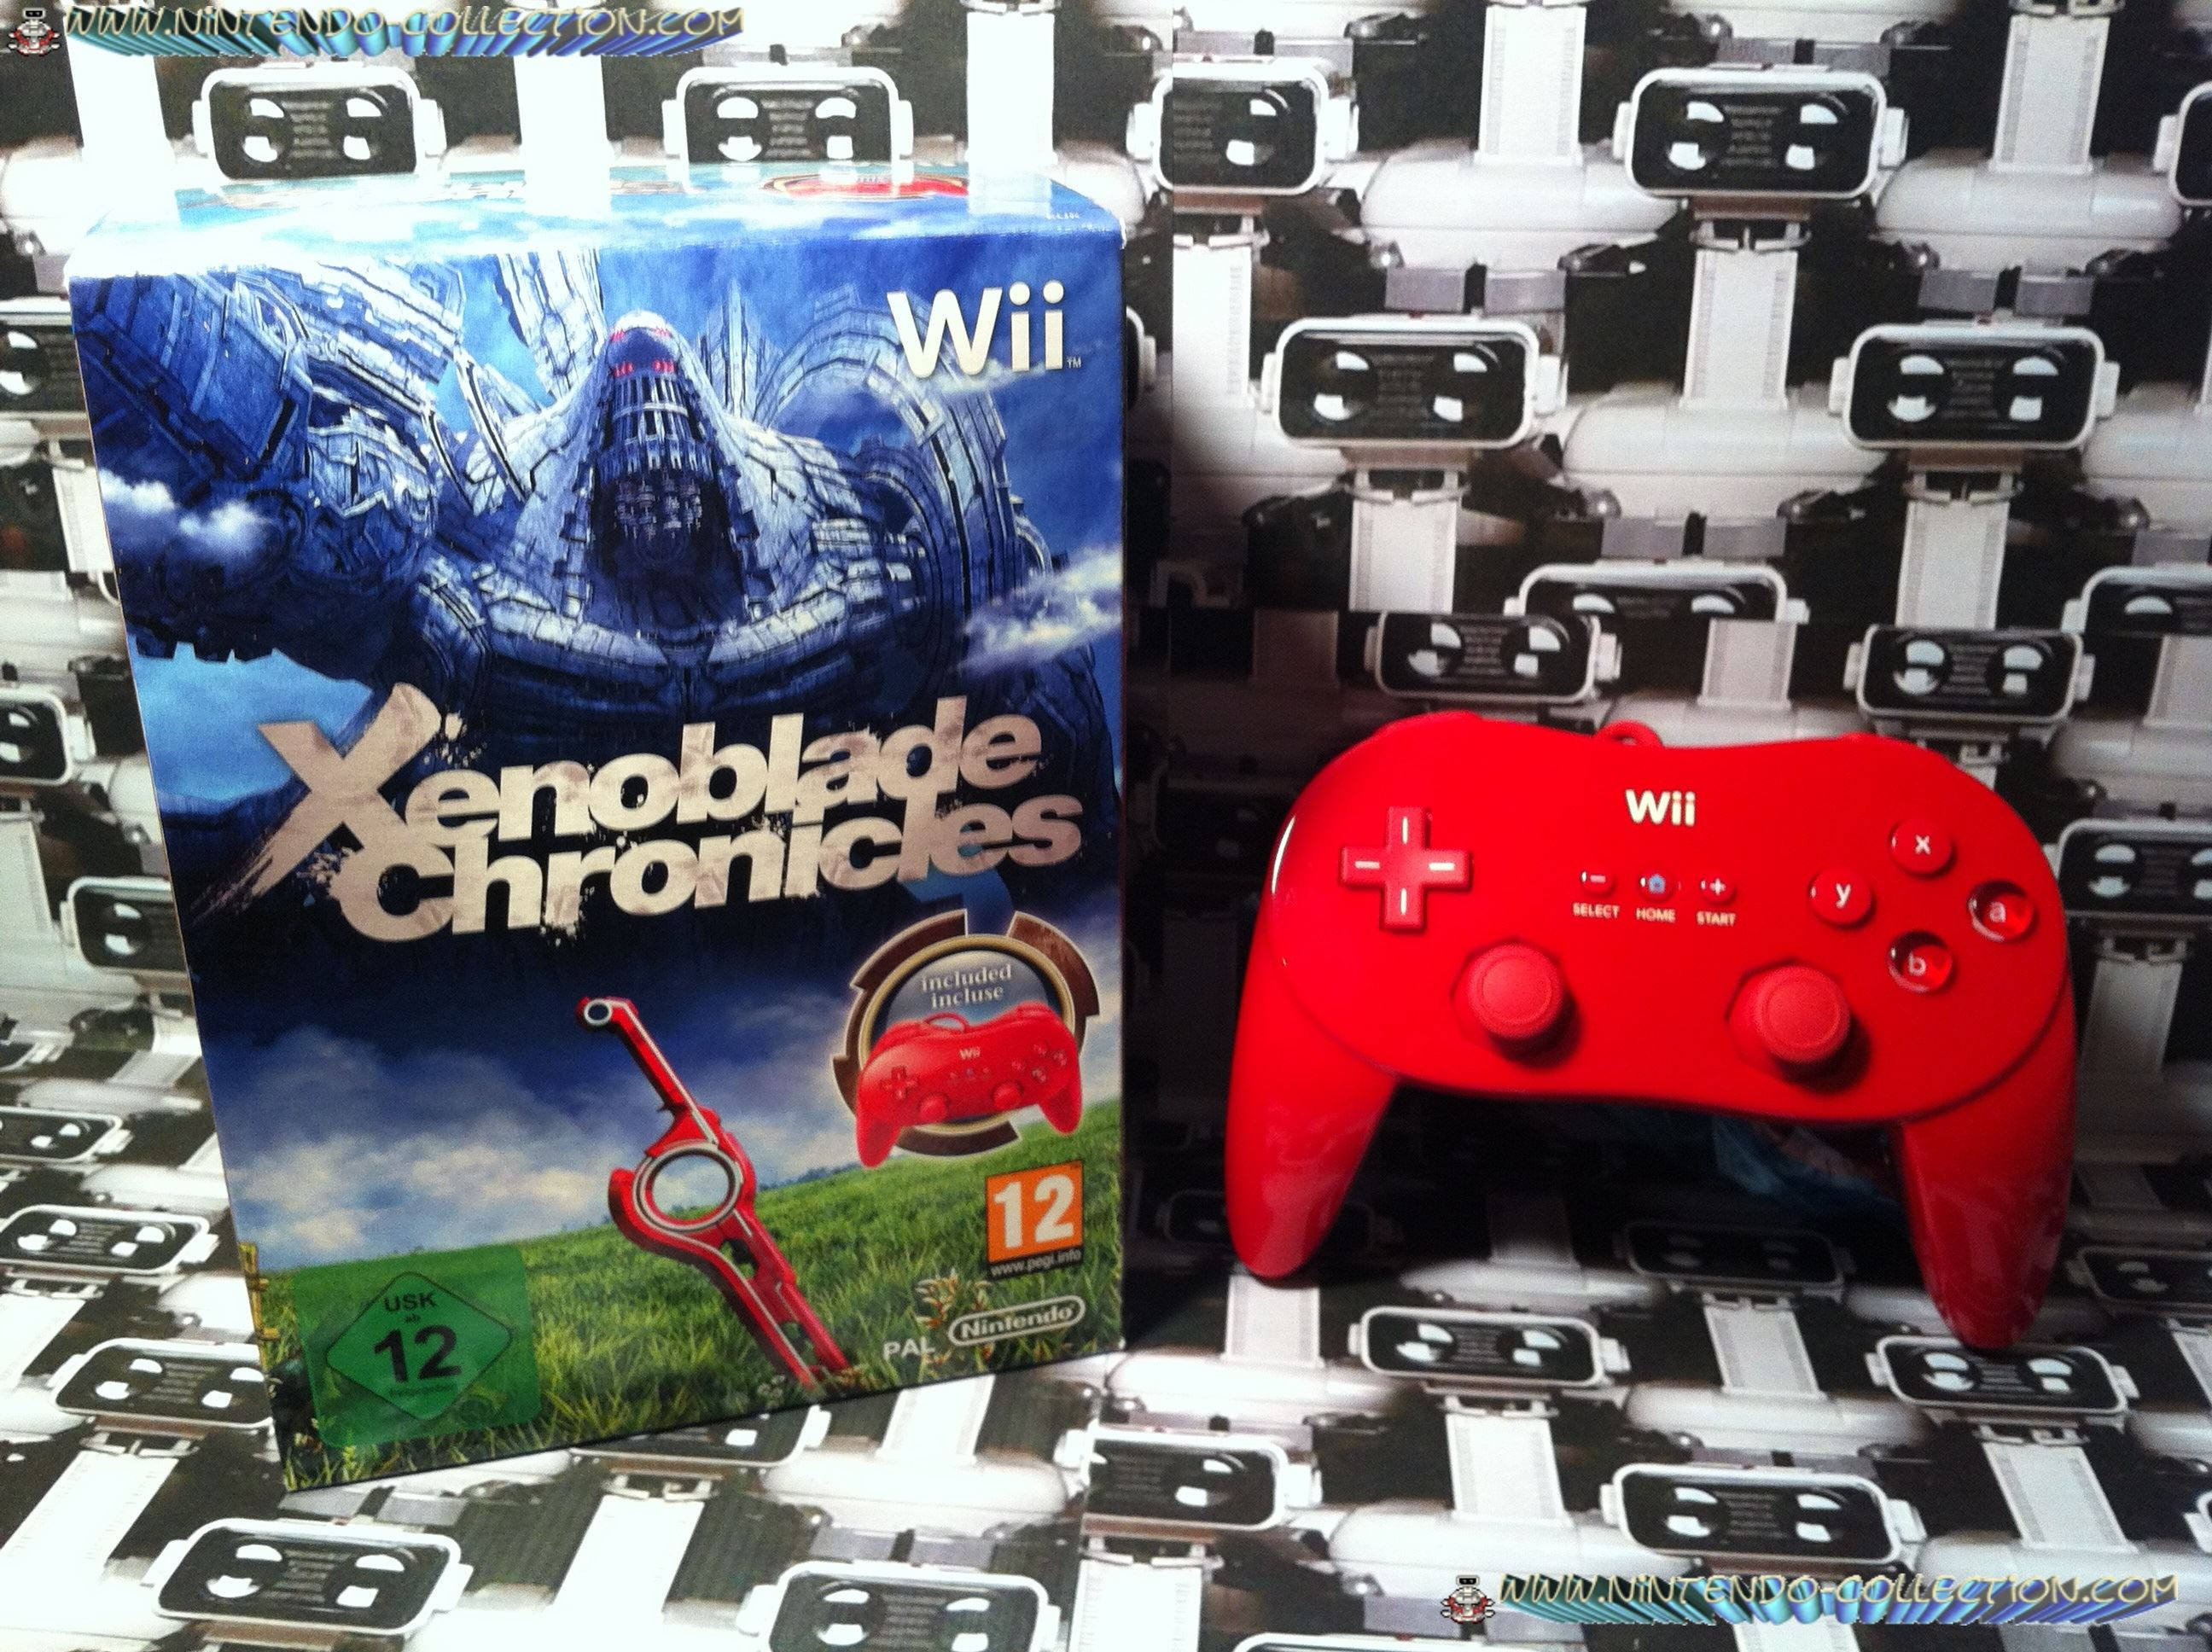 www.nintendo-collection.com - Wii Xenoblade Chronicles Limited Edition Wii controller pro Red limite